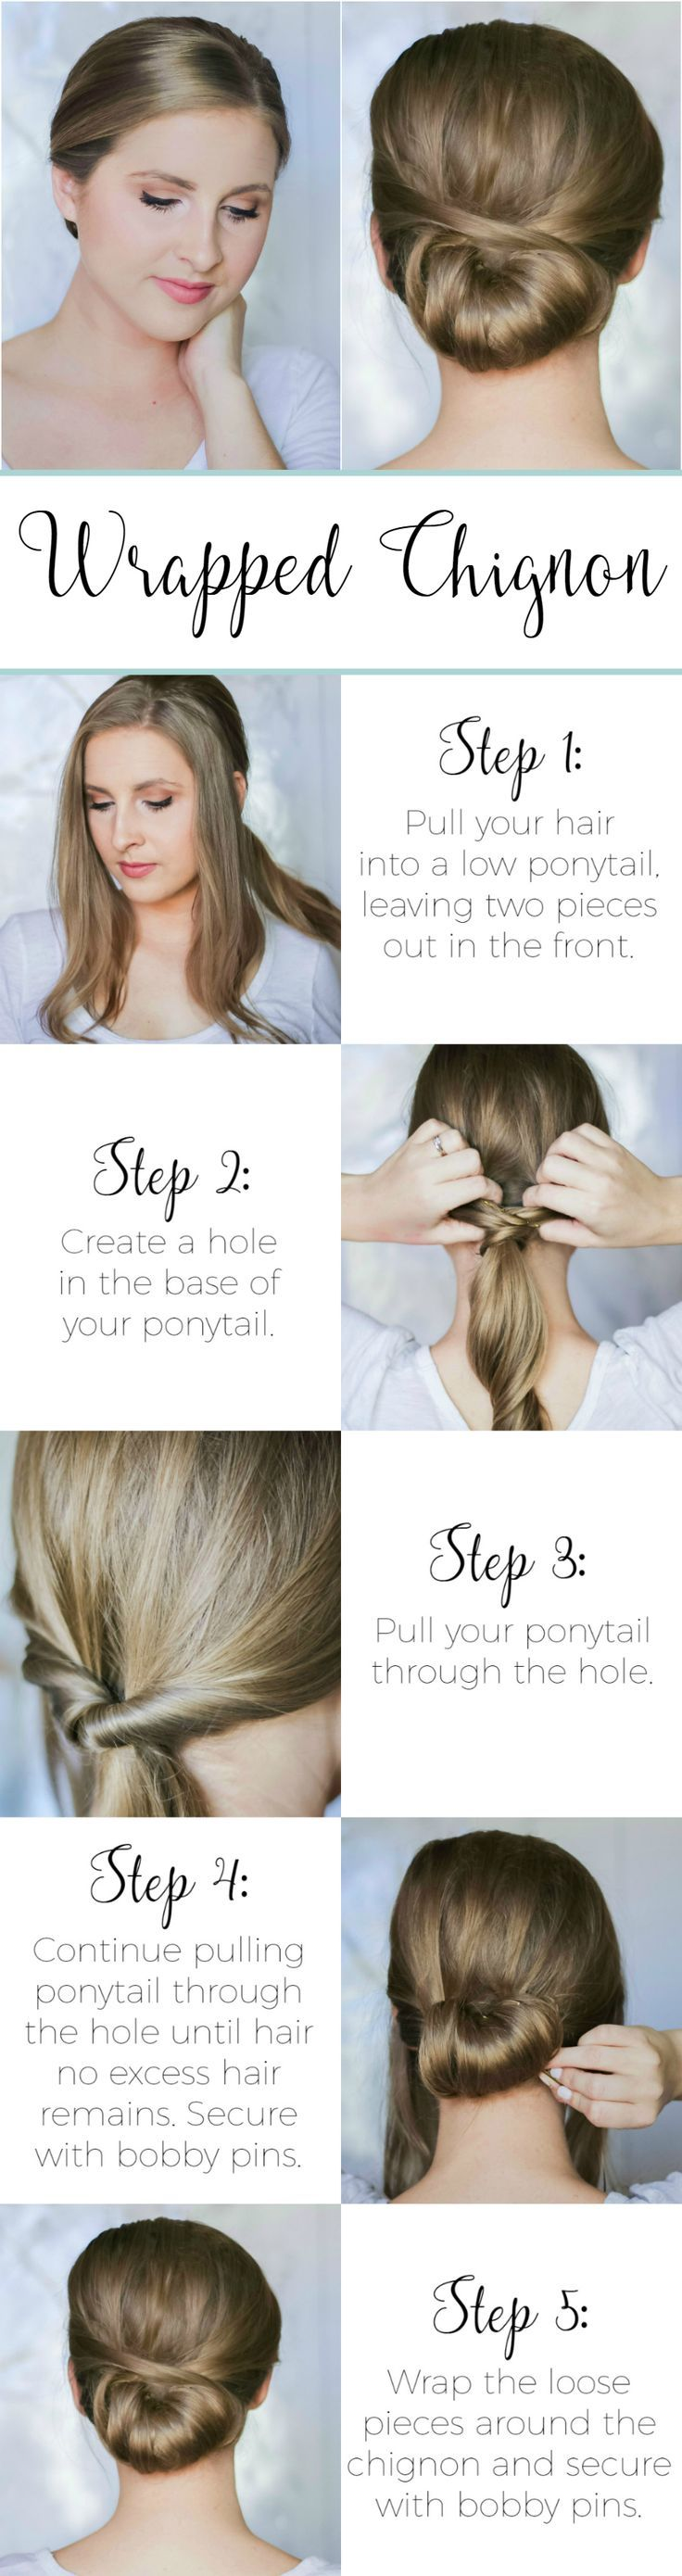 best 25+ second day hairstyles ideas on pinterest | bumble and